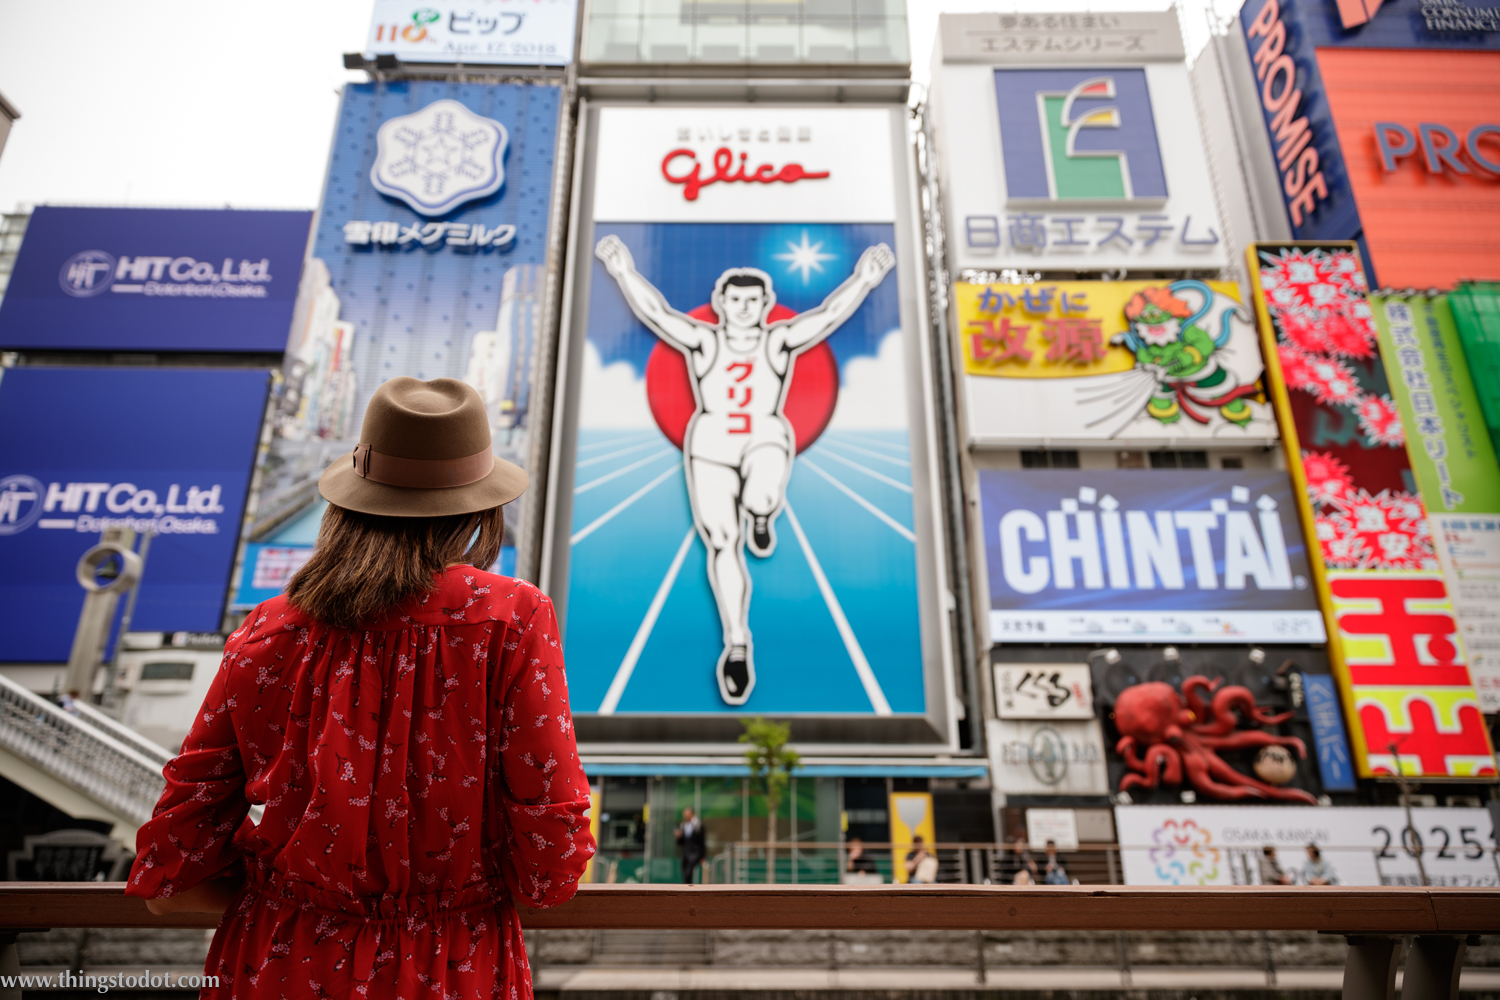 Top 5 things to do in Osaka, Japan | Things to Dot